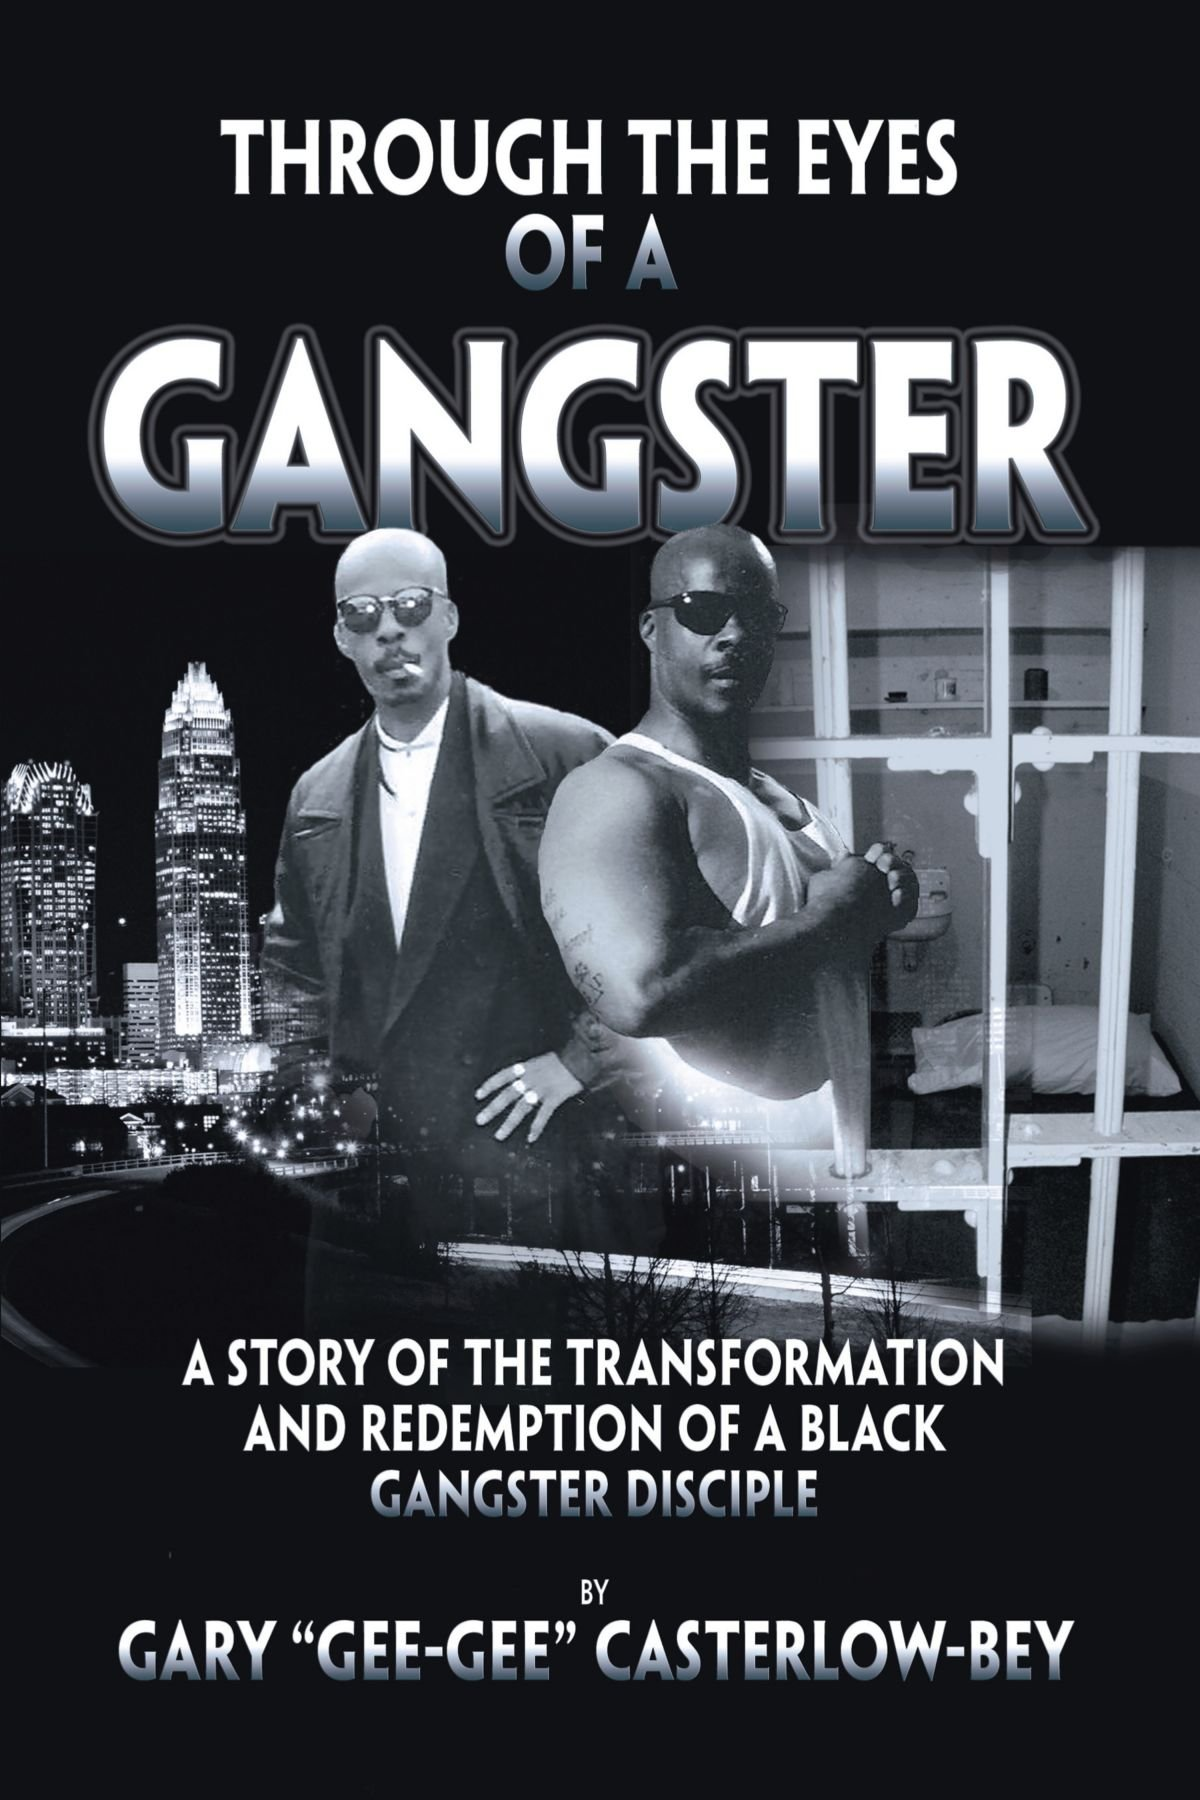 Through the eyes of a gangster a story of the transformation and through the eyes of a gangster a story of the transformation and redemption of a black gangster disciple gary gee gee casterlow bey 9781425101114 malvernweather Gallery